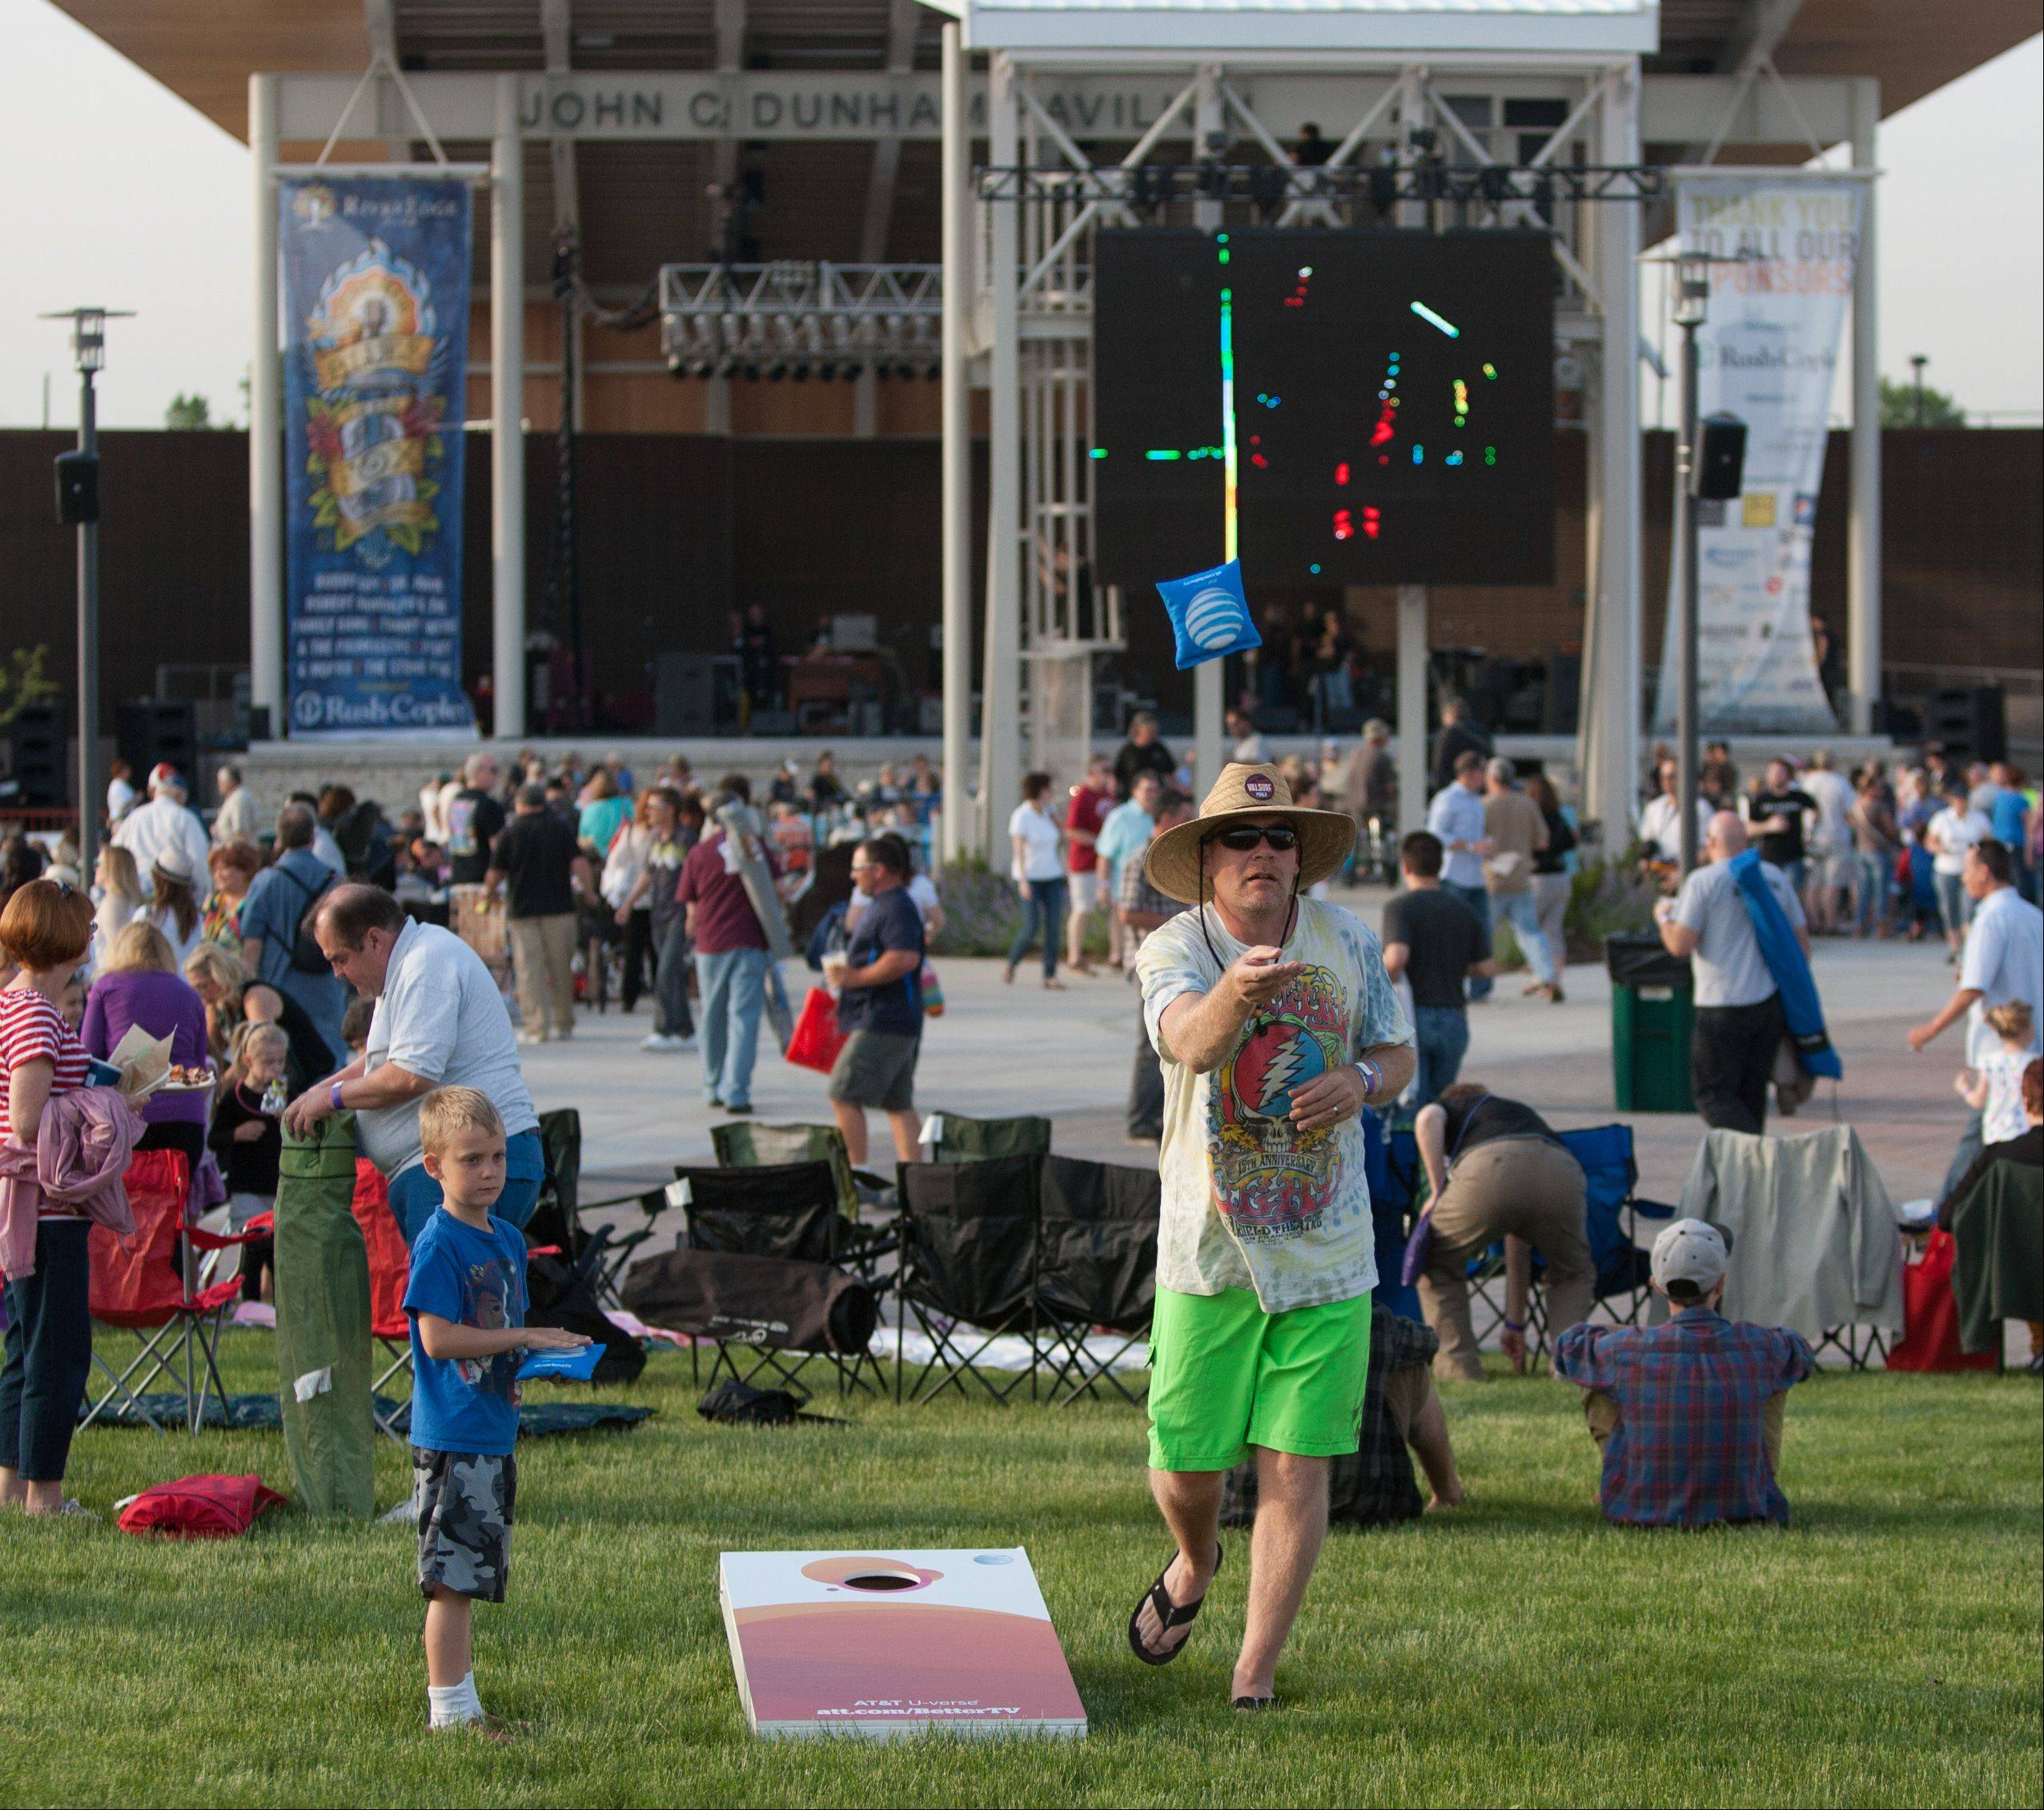 Brian Voss of Darien plays bags, during the opening night of RiverEdge Park, coinciding with the 17th annual Blues on the Fox festival. At left is his son Evan.